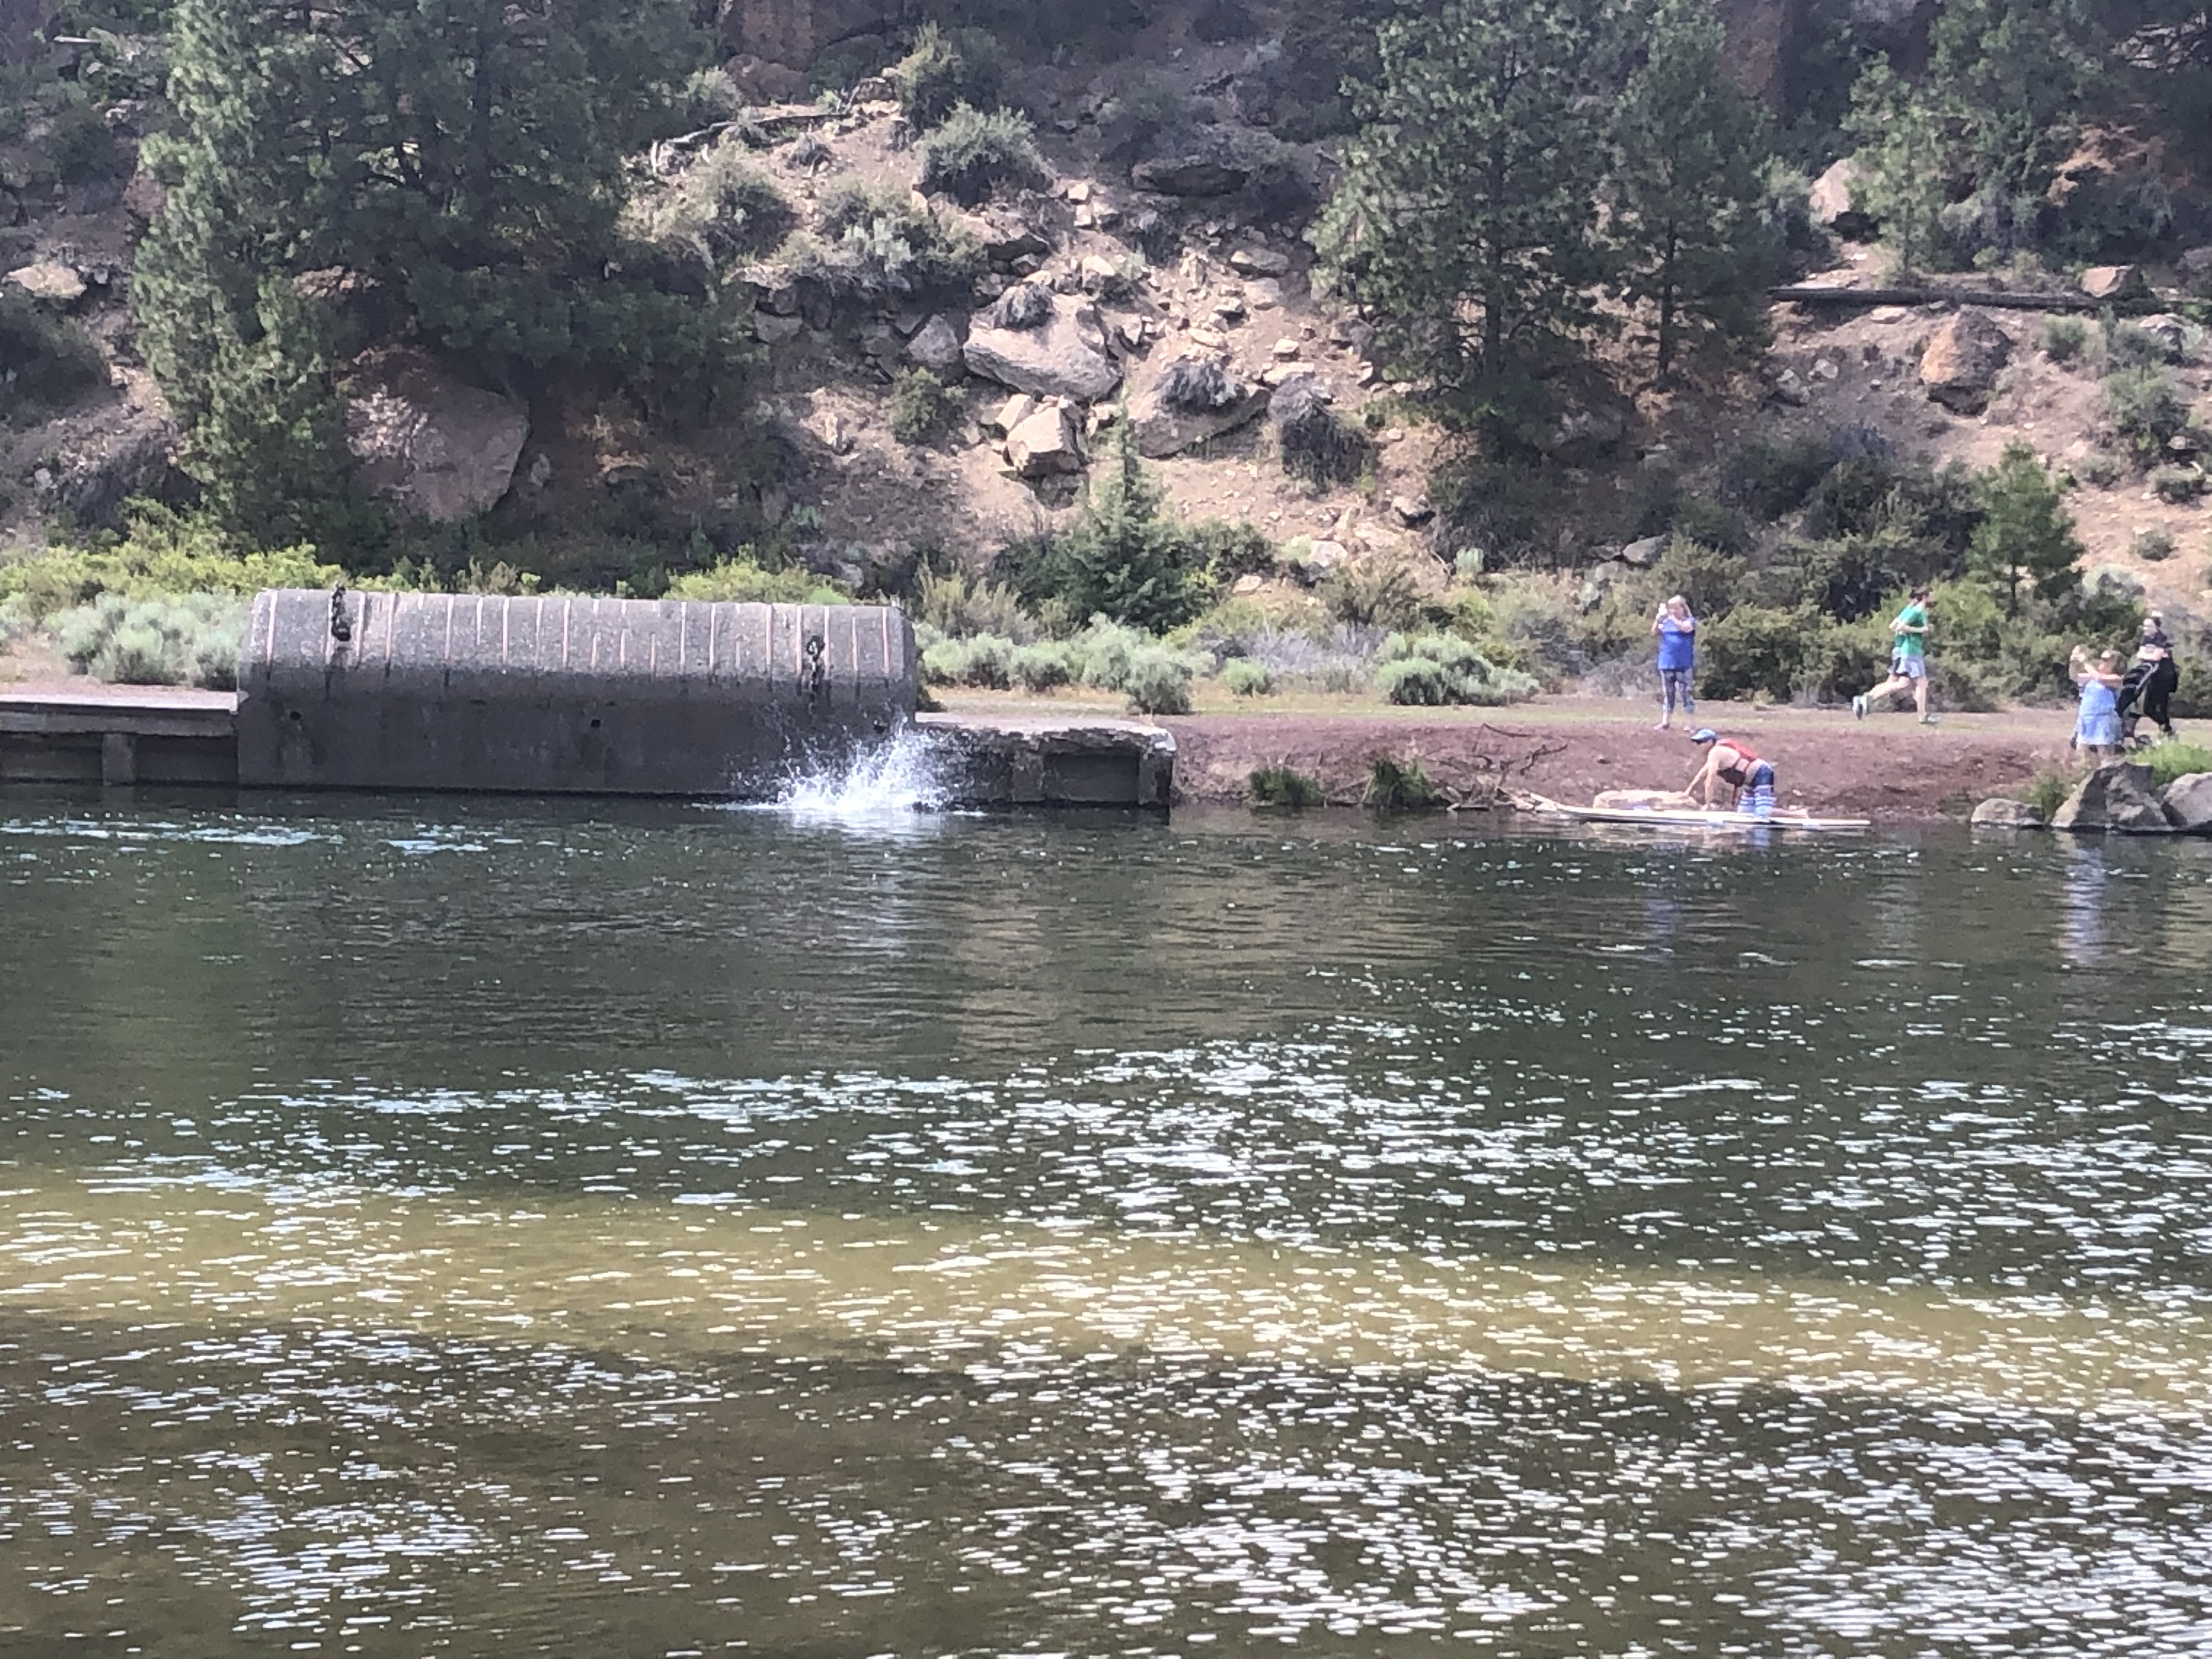 Image of the Deschutes River bank in Farewell Bend Park along the Deschutes River Trail.